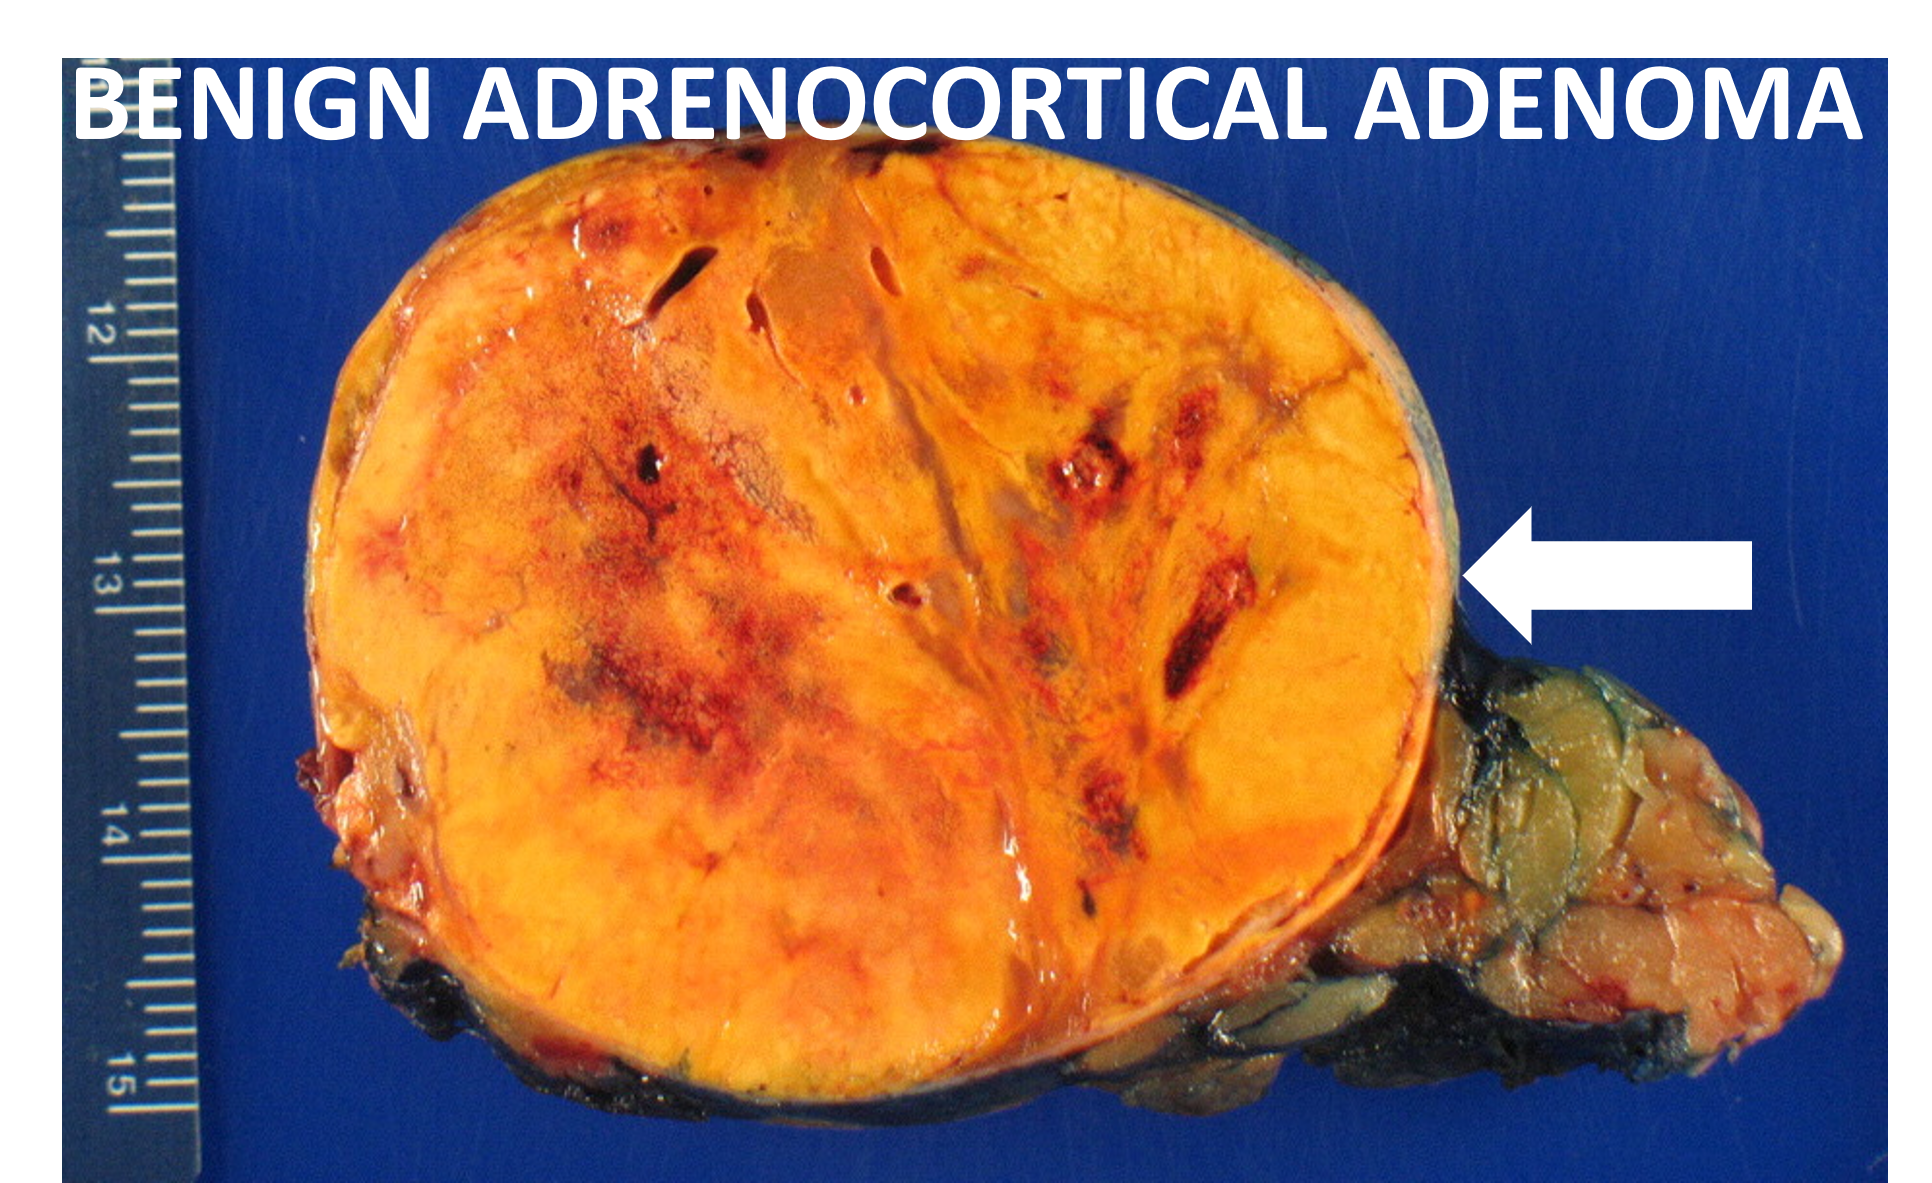 Gross pathology of a typical adrenal adenoma (arrow). It has a typical yellow-orange color. This tumor caused Cushing's syndrome (too much cortisol).